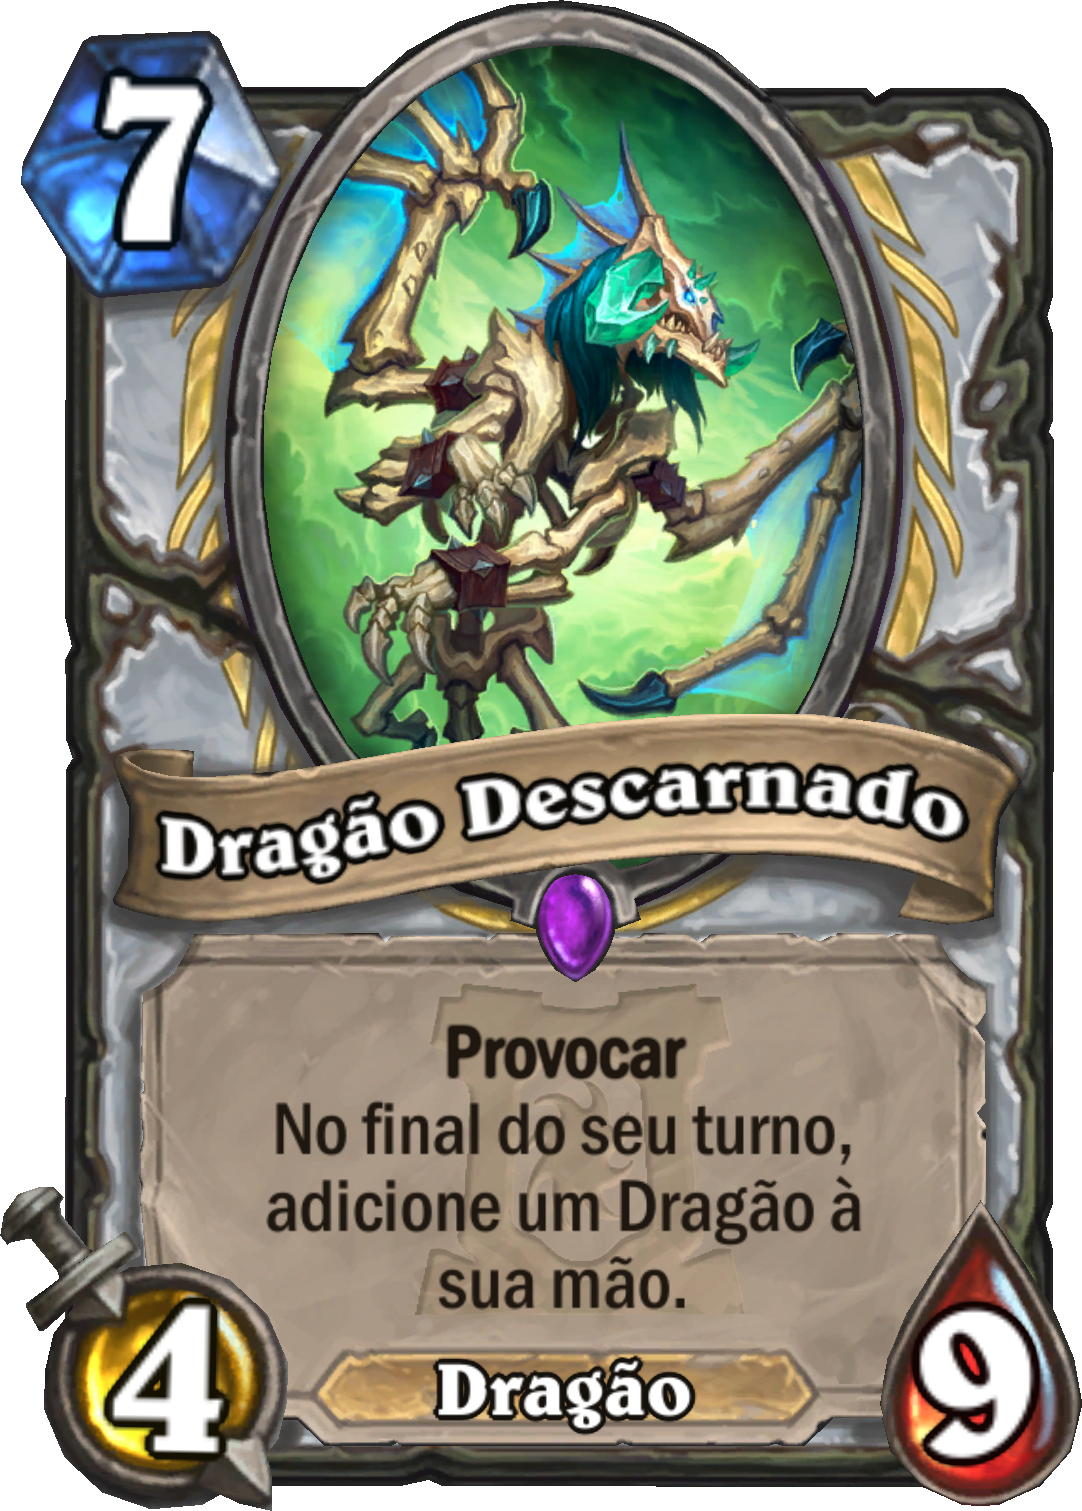 Dragão Descarnado